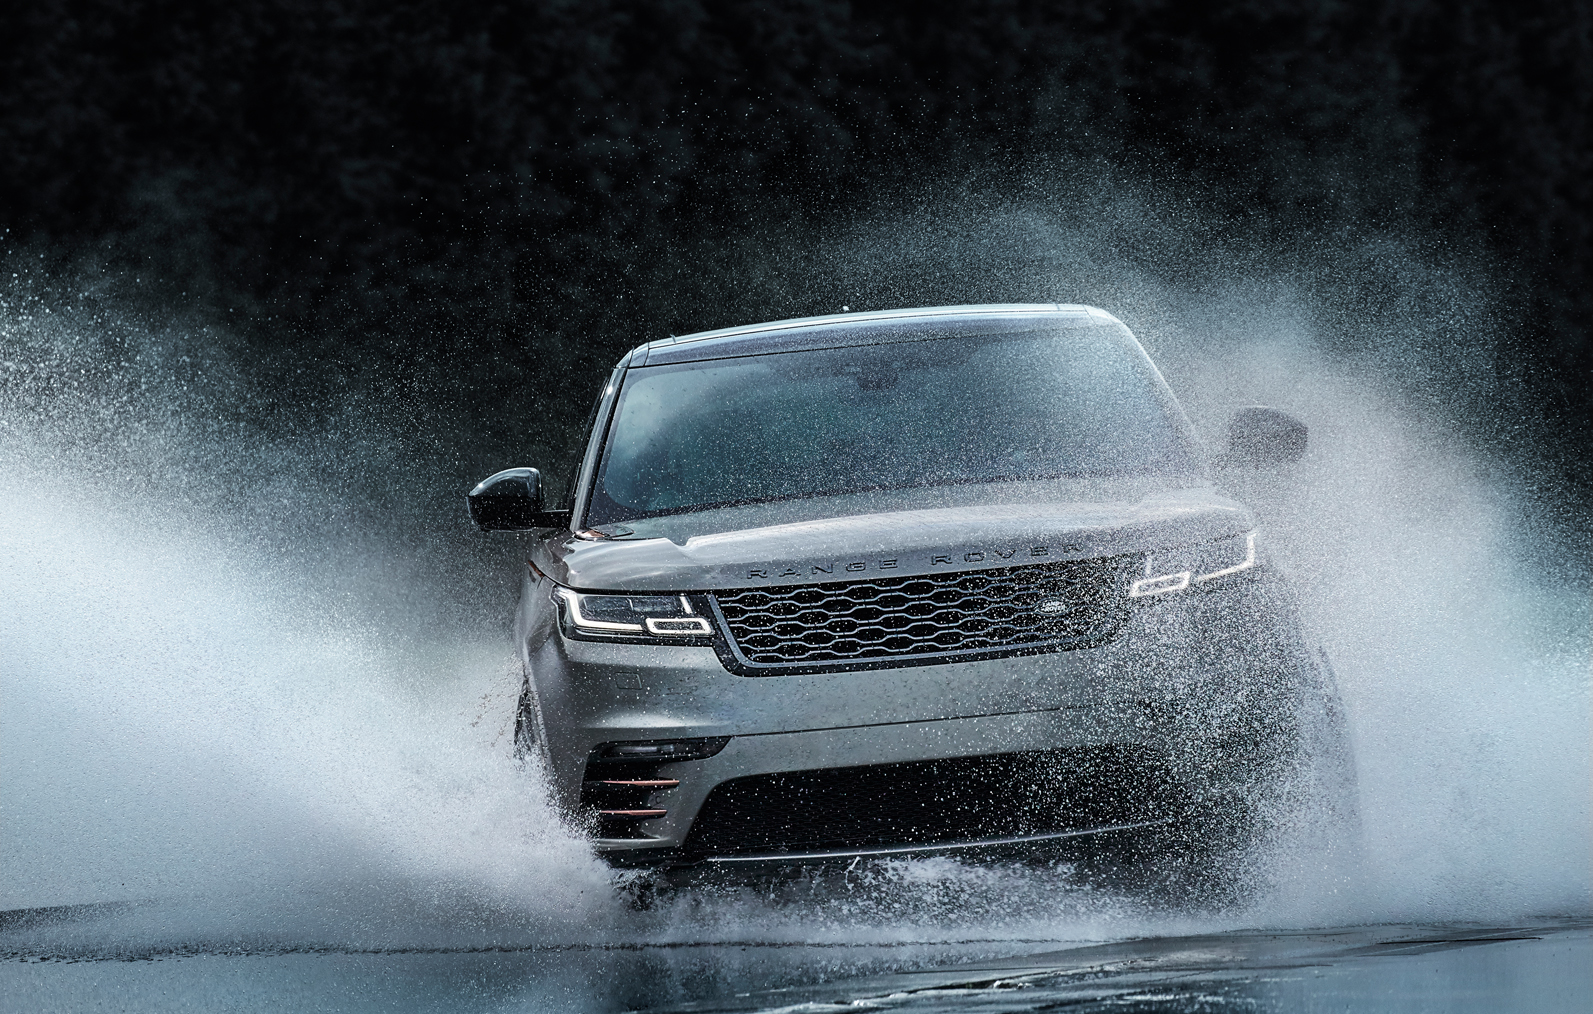 Renting a Range Rover - is it really worth it?